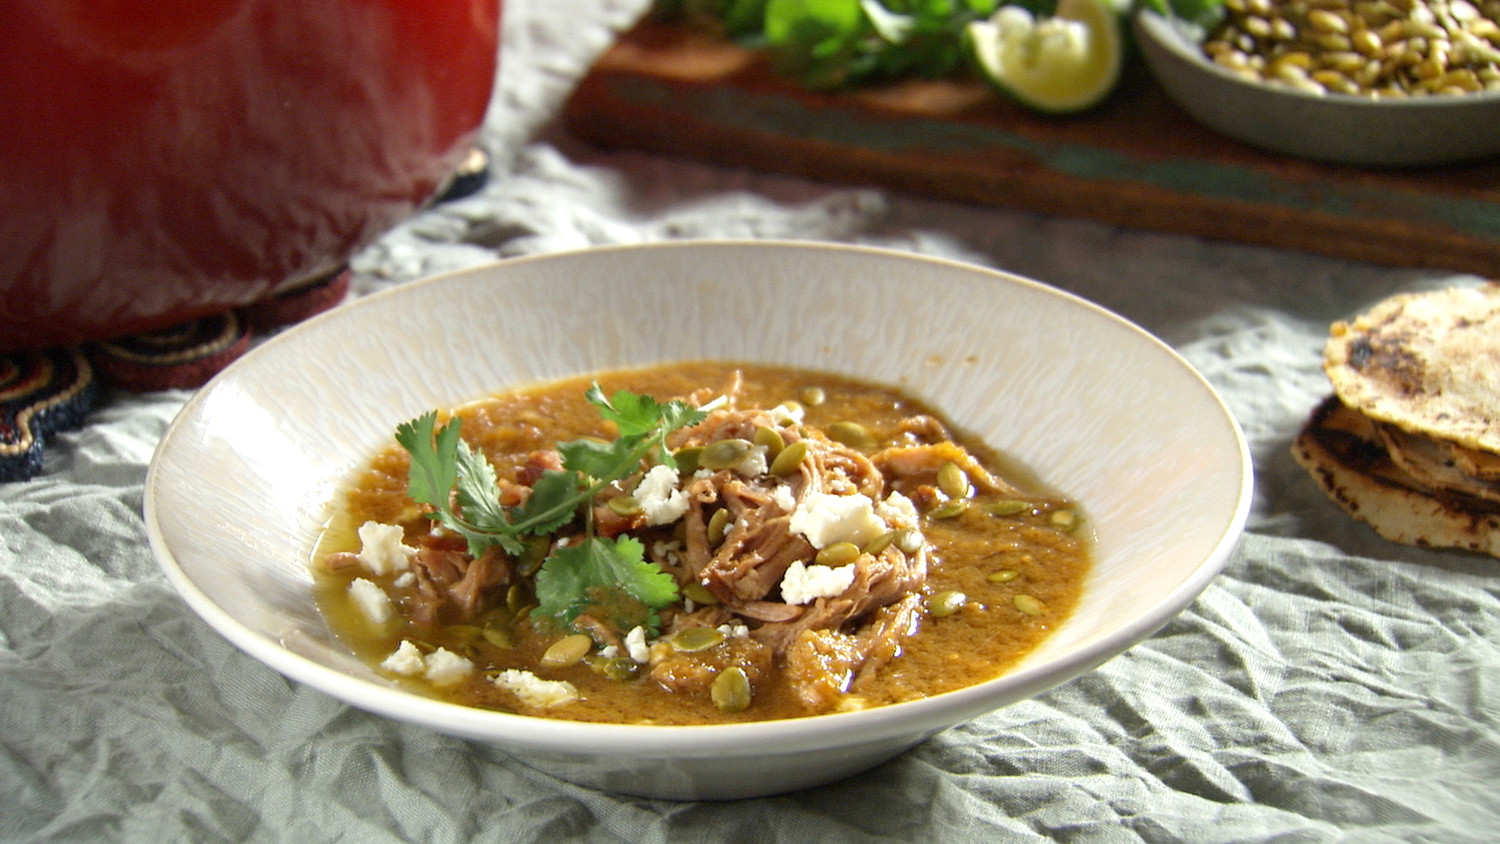 Recipe with tomatillos and pork